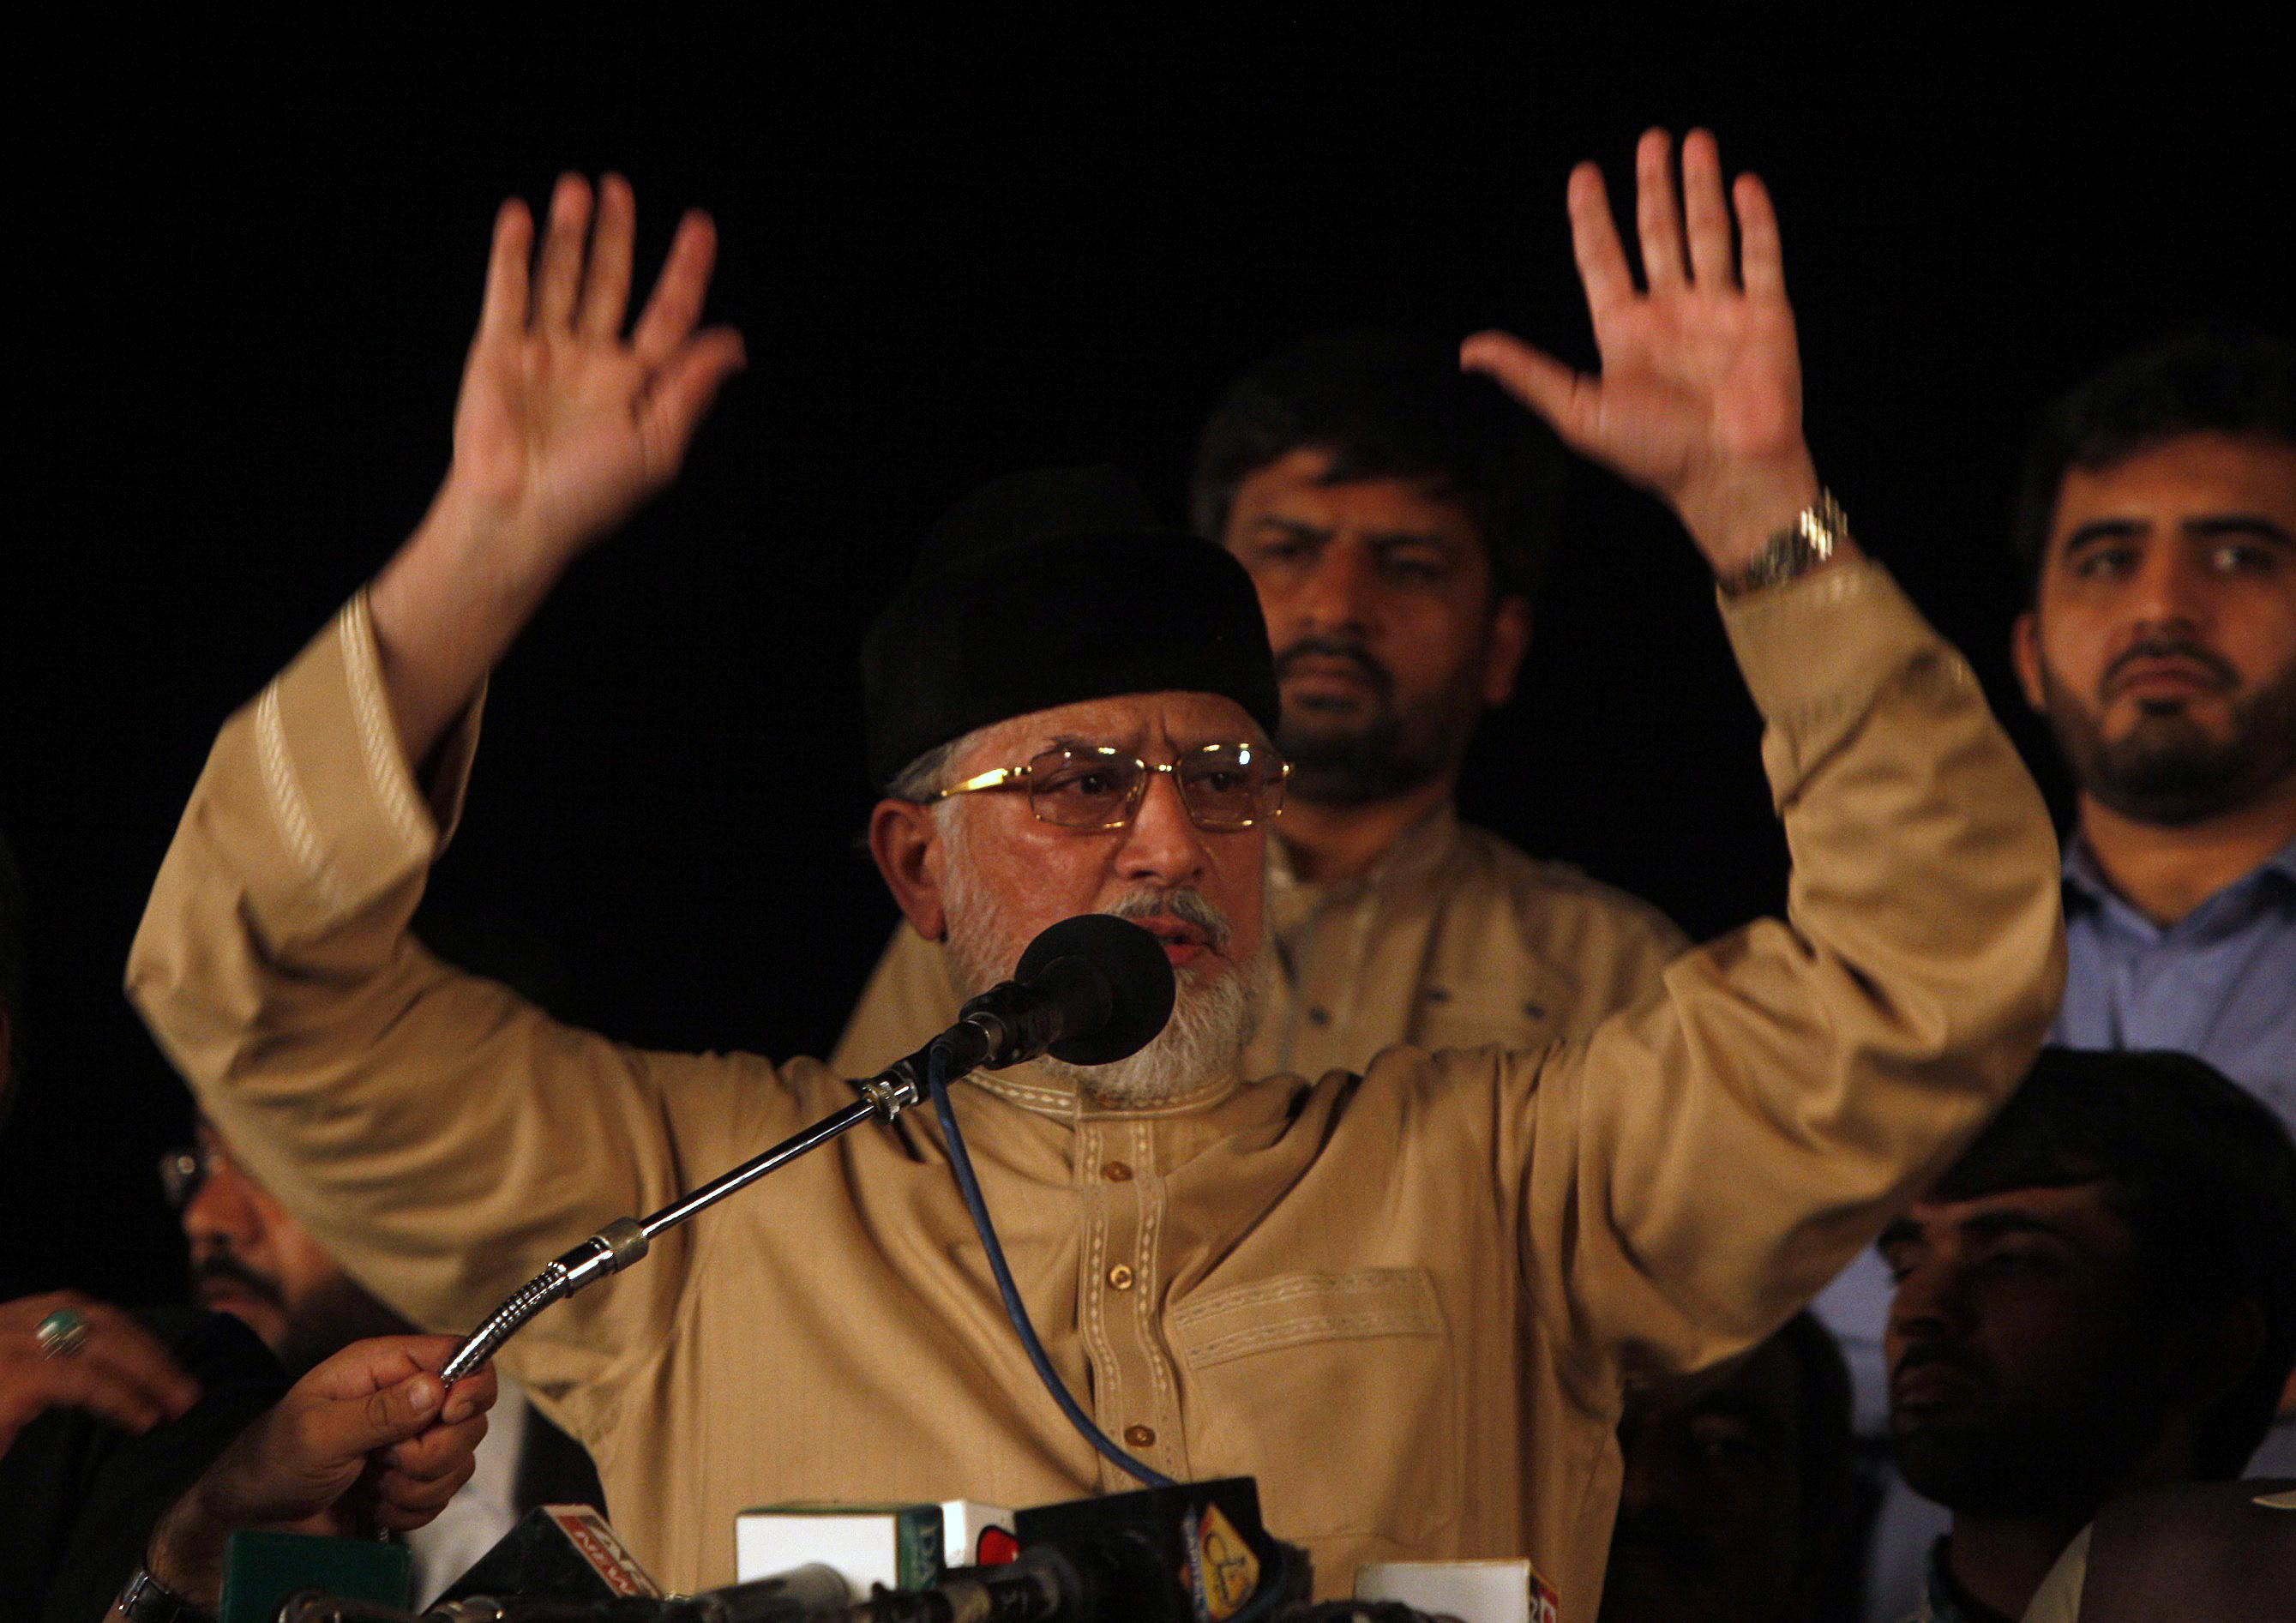 Tahir ul-Qadri, Sufi cleric and opposition leader of political party Pakistan Awami Tehreek (PAT), addresses supporters in Islamabad September 3, 2014.